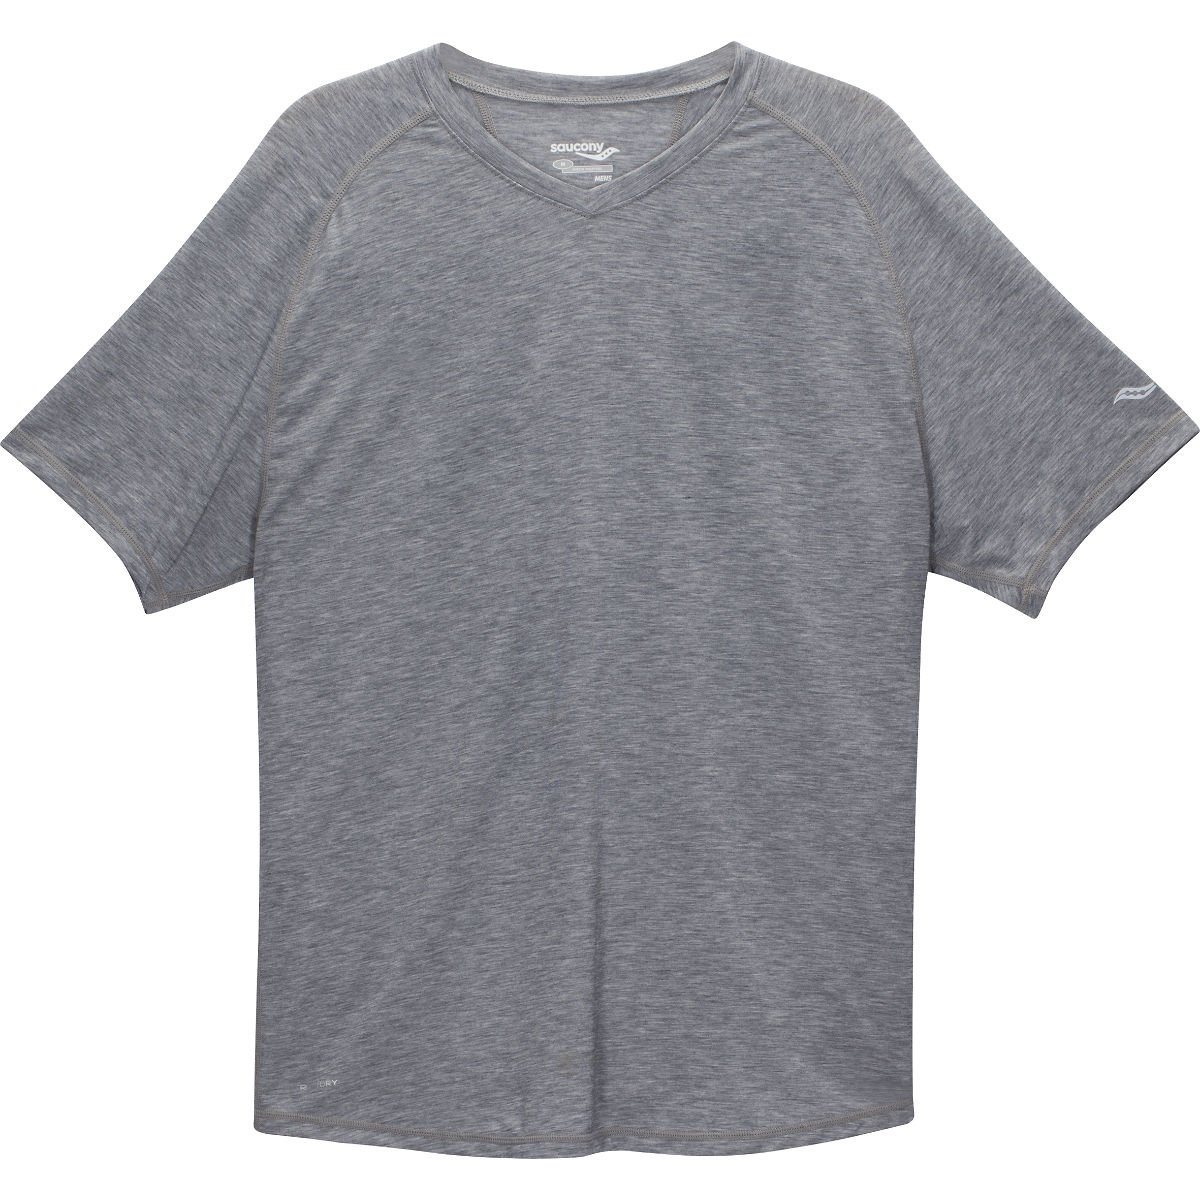 Triko Saucony SAUCONY Freedom v neck/dark grey…